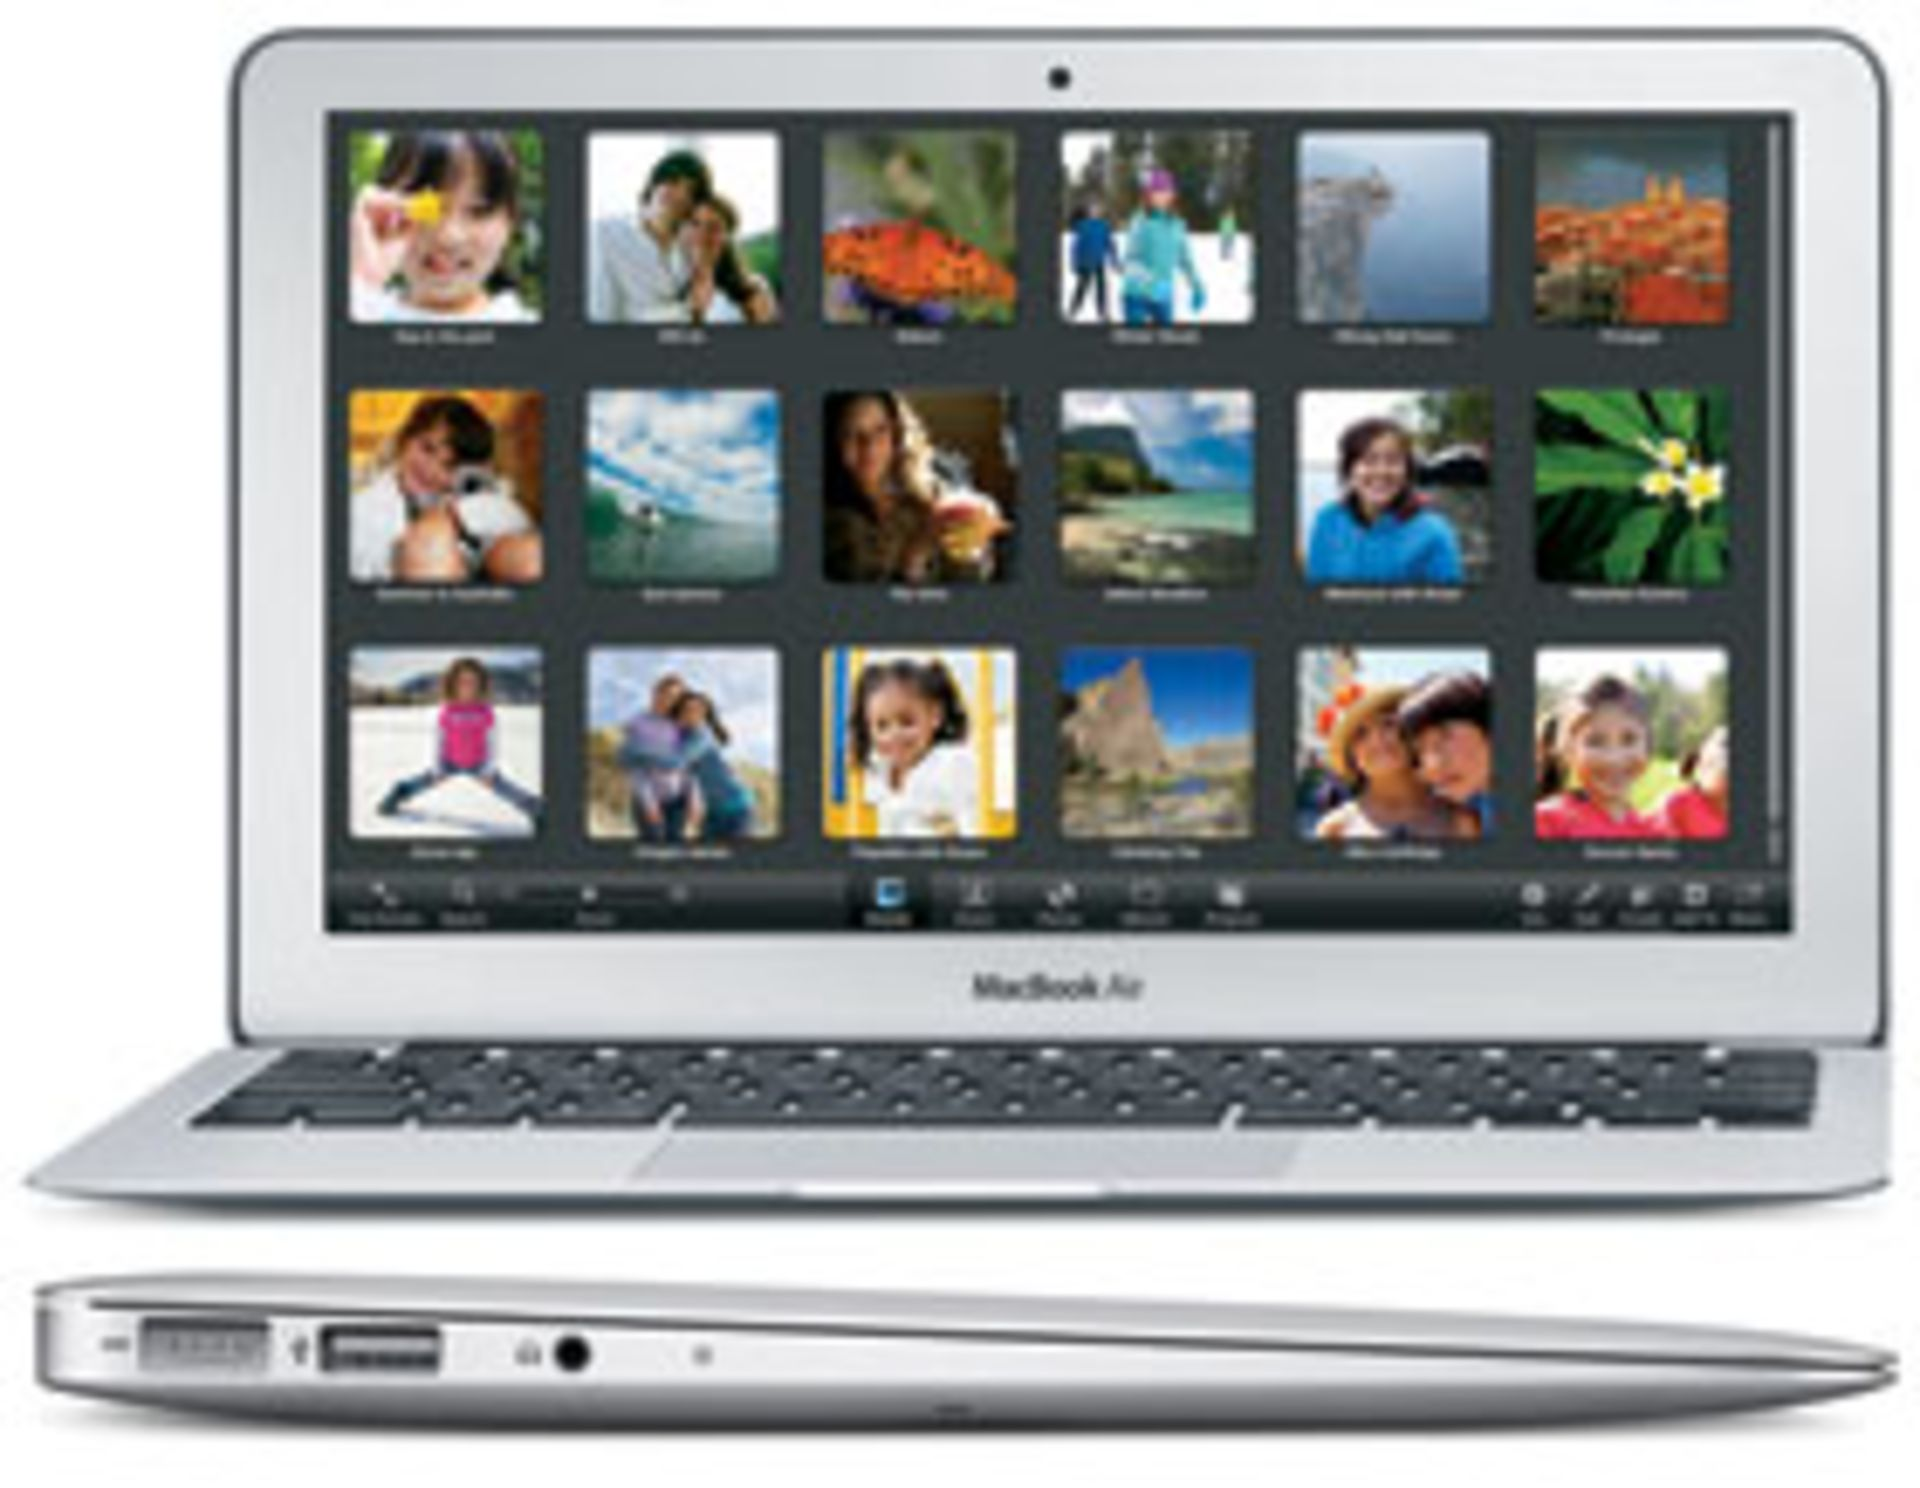 Lot 60009 - V Grade B Macbook Air 11.6 Inch Core 2 Duo - 64GB SSD - A1370 - Available Approx 7 Working Days